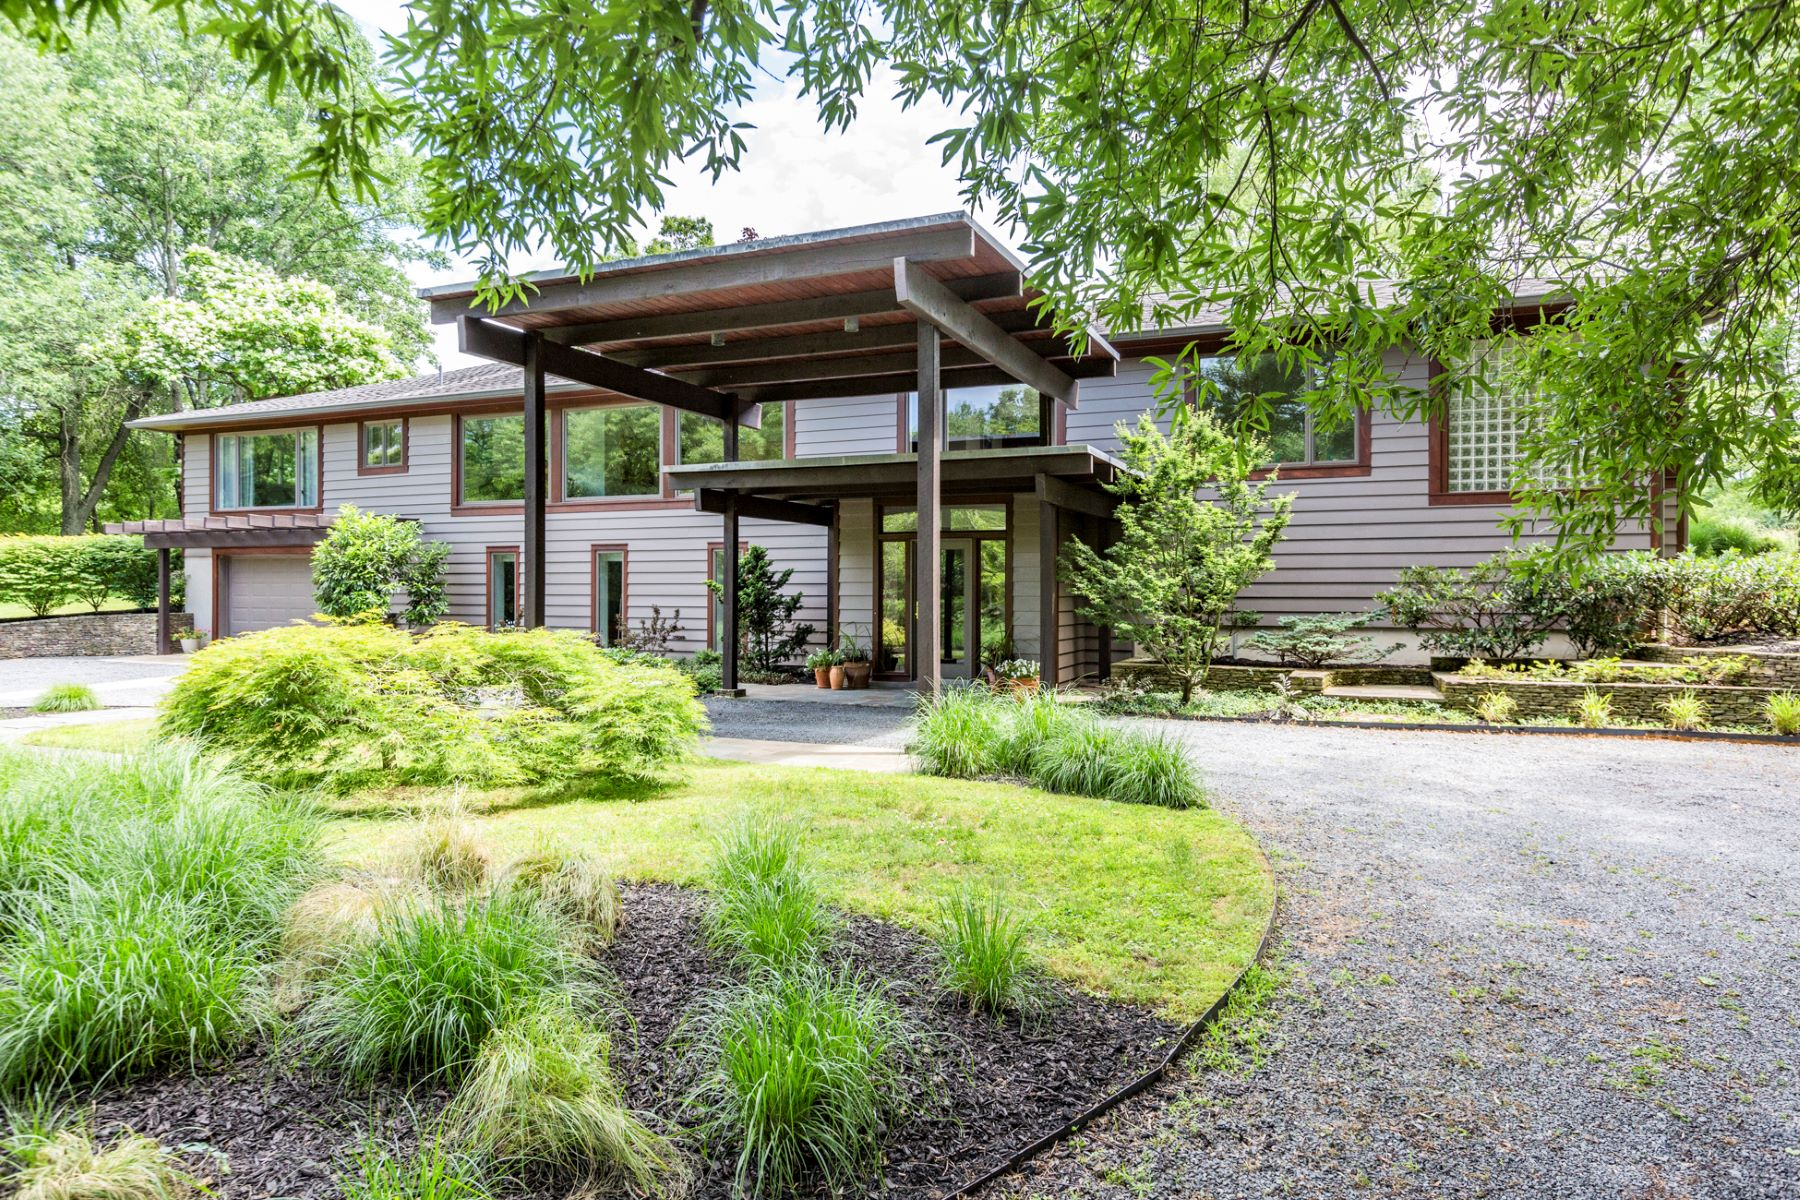 Single Family Home for Sale at Framing It Just Right: Modern With Magical Views 13 Aunt Molly Road, Hopewell, New Jersey 08525 United States